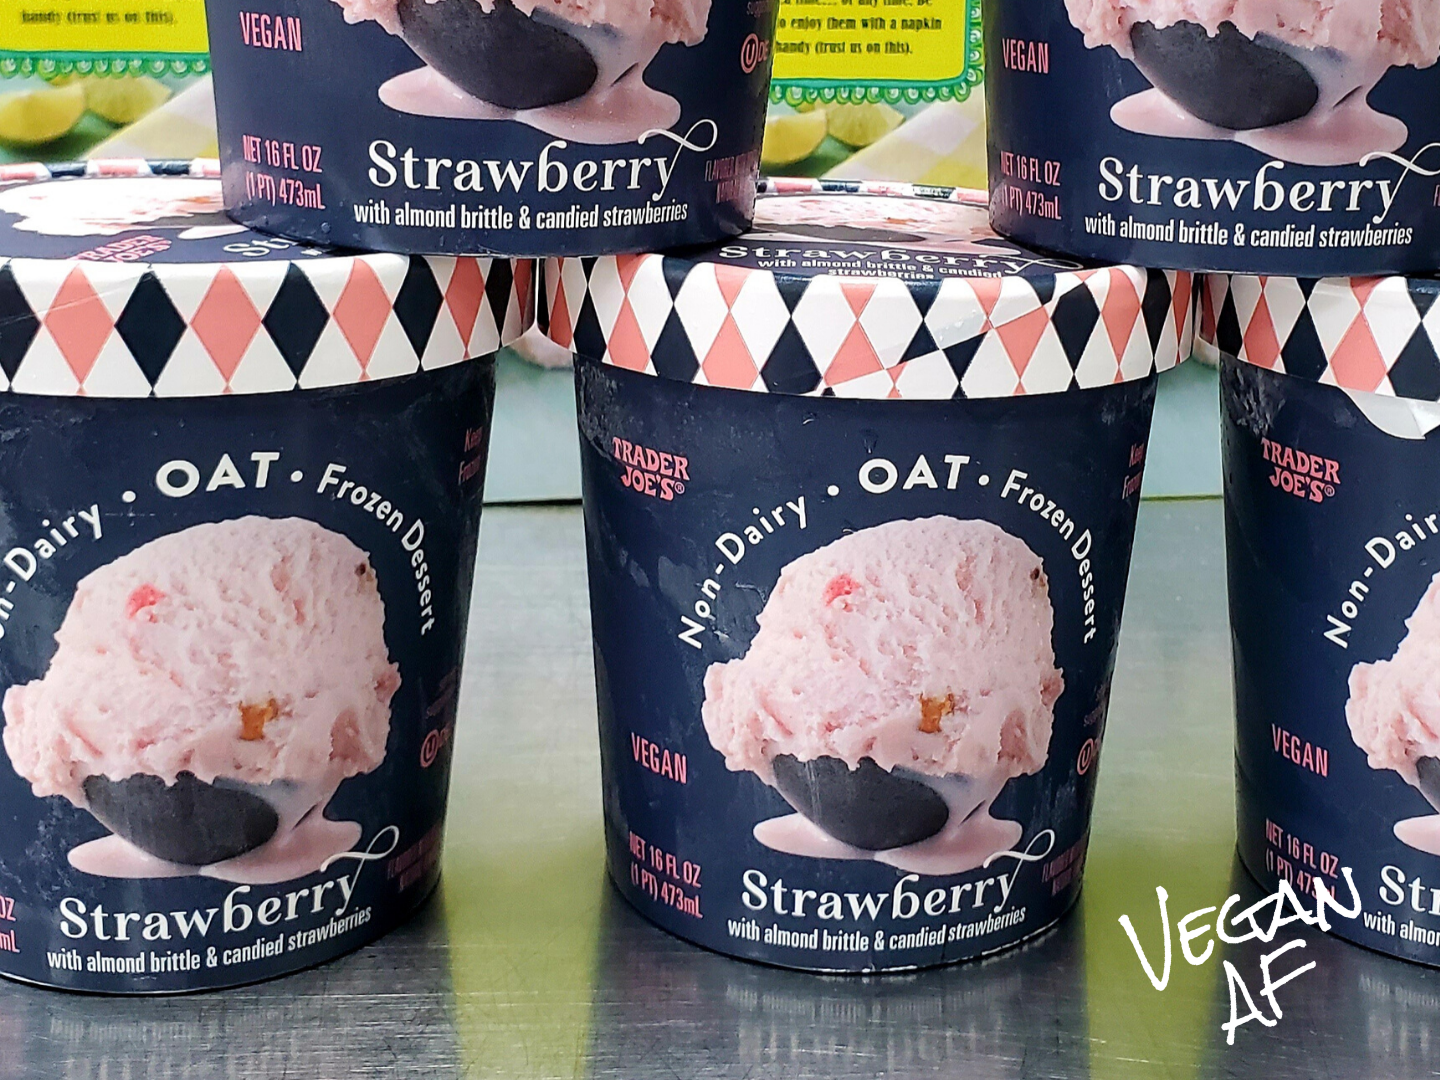 Trader Joe's Debuts Vegan Strawberry Oat Milk Ice Cream Pints